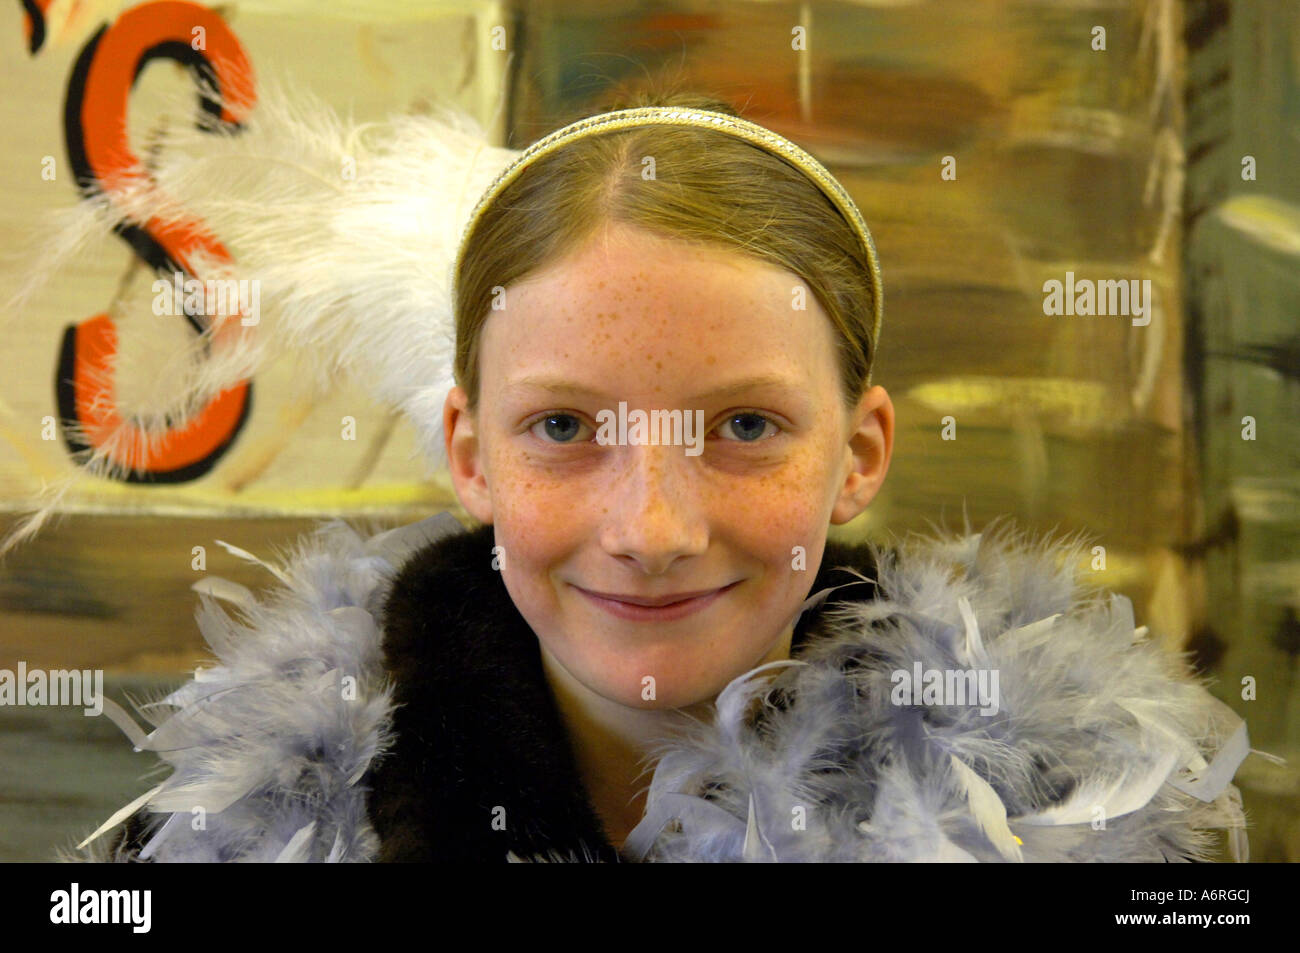 female girl preteen actress drama stock photos & female girl